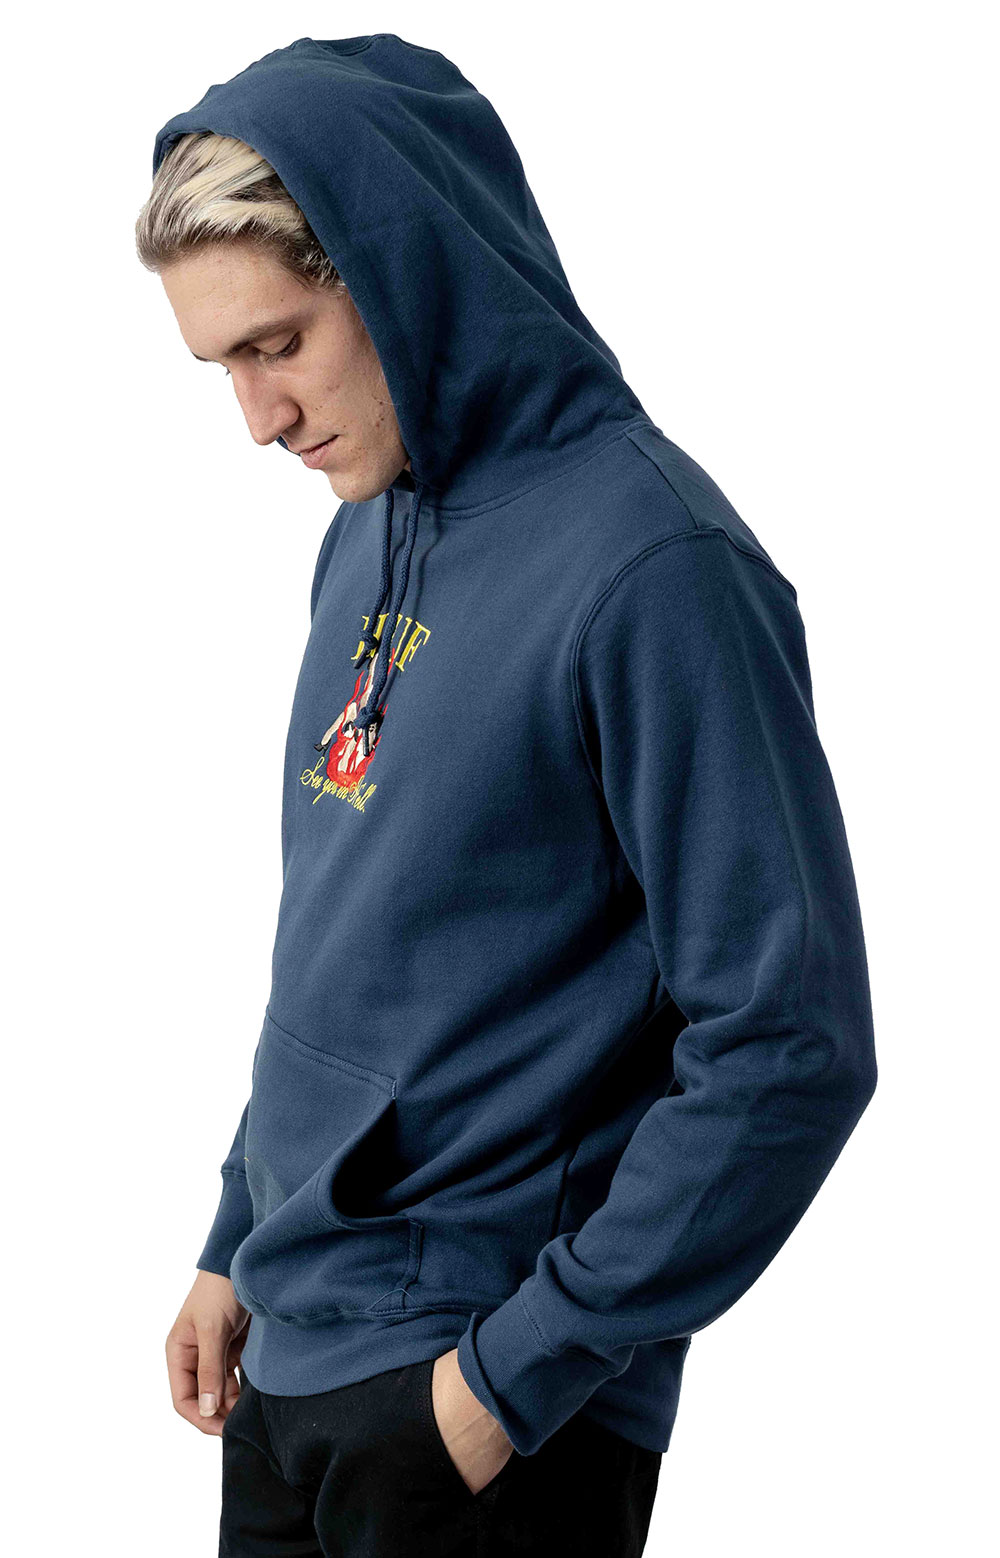 See You In Hell Pullover Hoodie - Insignia Blue 2